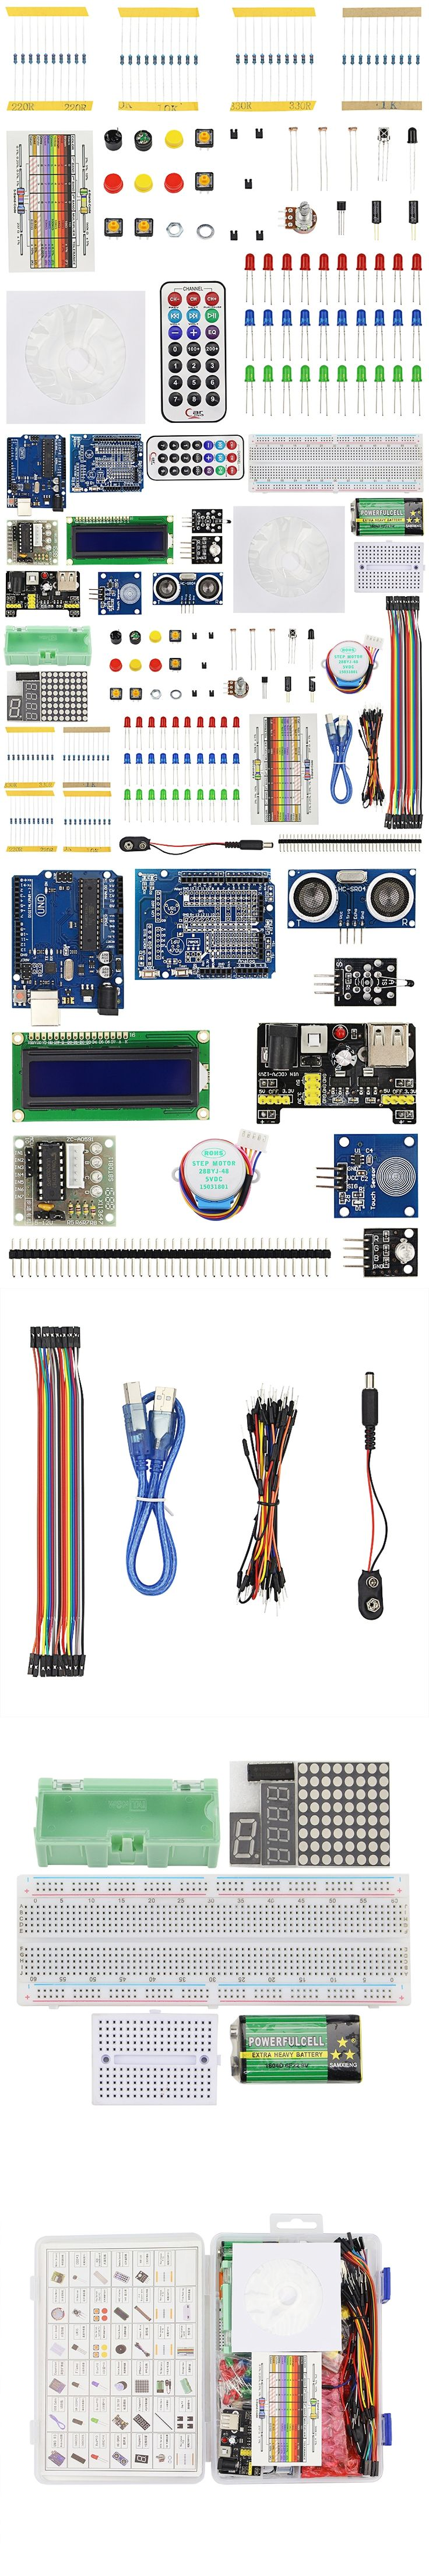 High Quality Starter Kit for Arduino Motor Breadboard Jumper Wire LCD1602 LED Lights USB Cable Resistance Kit for Arduino + Box